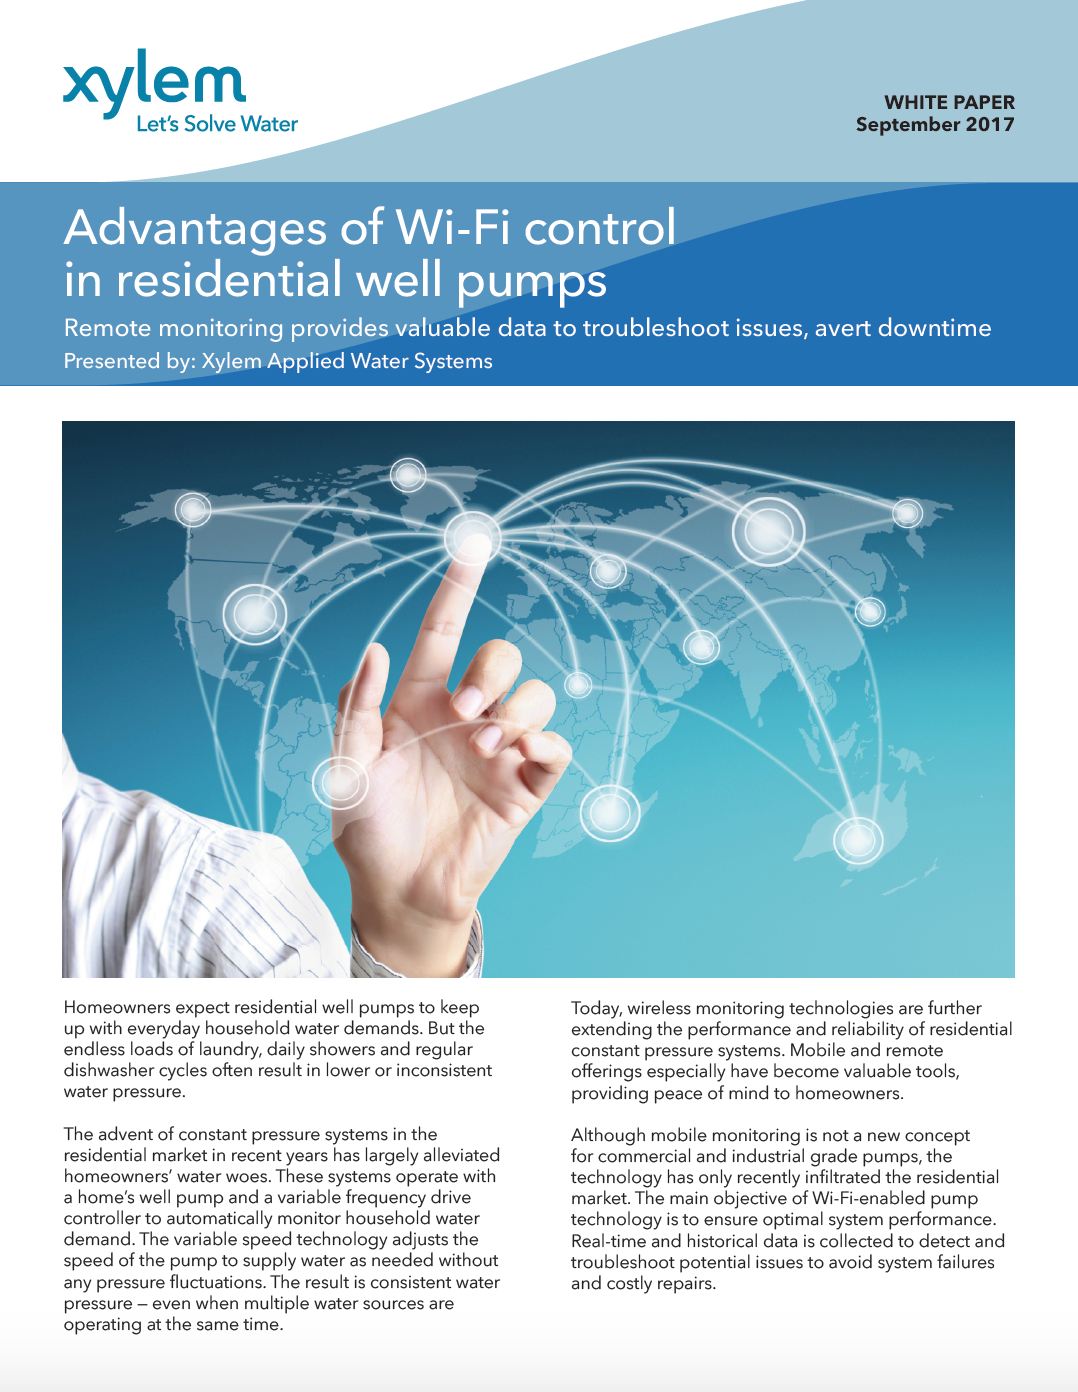 Advantages of Wi-Fi control in residential well pumps